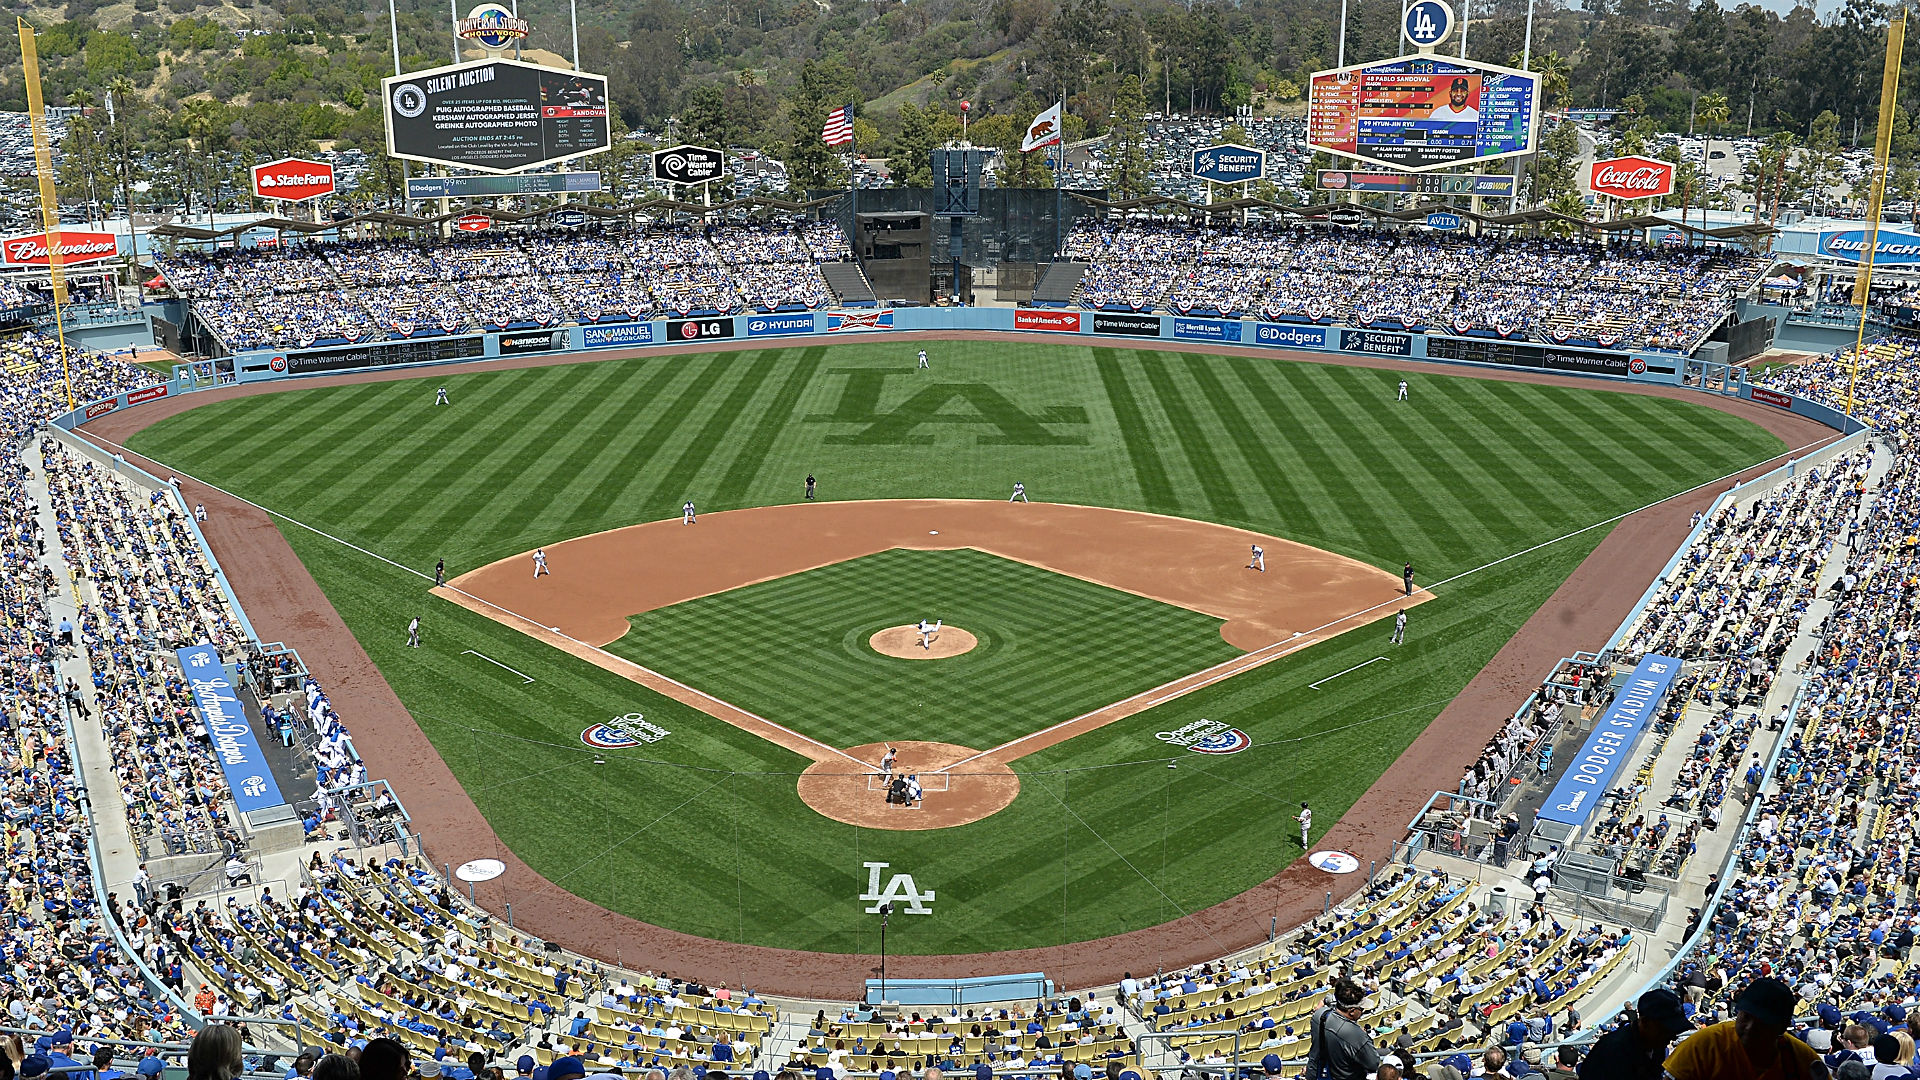 Dodgers awarded 2020 All-Star Game, MLB announces